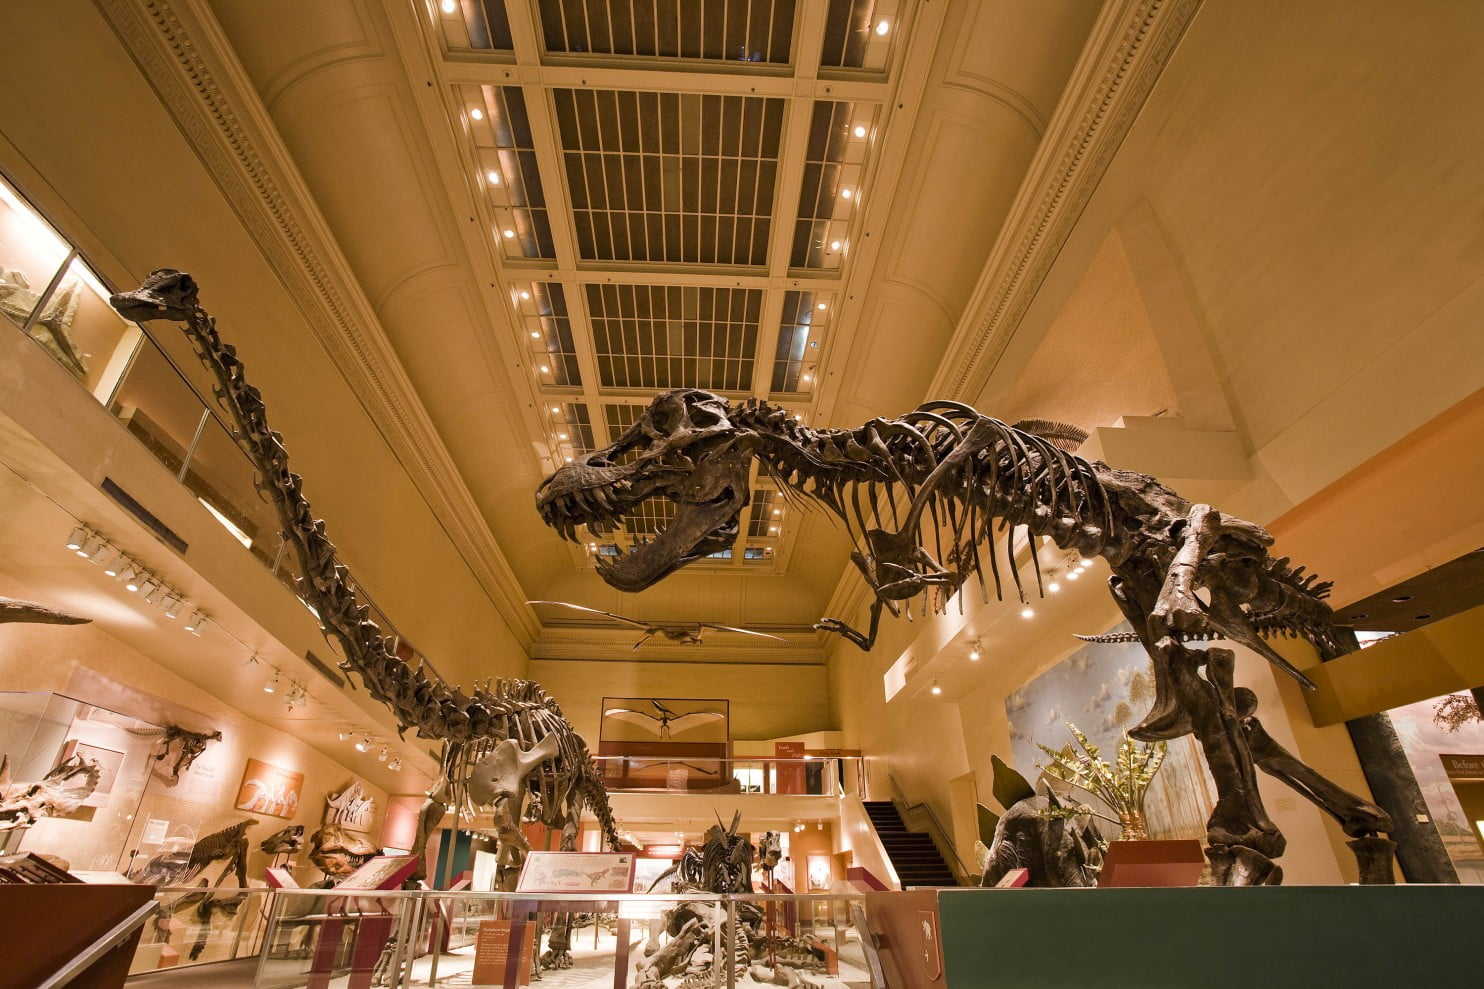 The Smithsonian Museums di Washington, Amerika Serikat